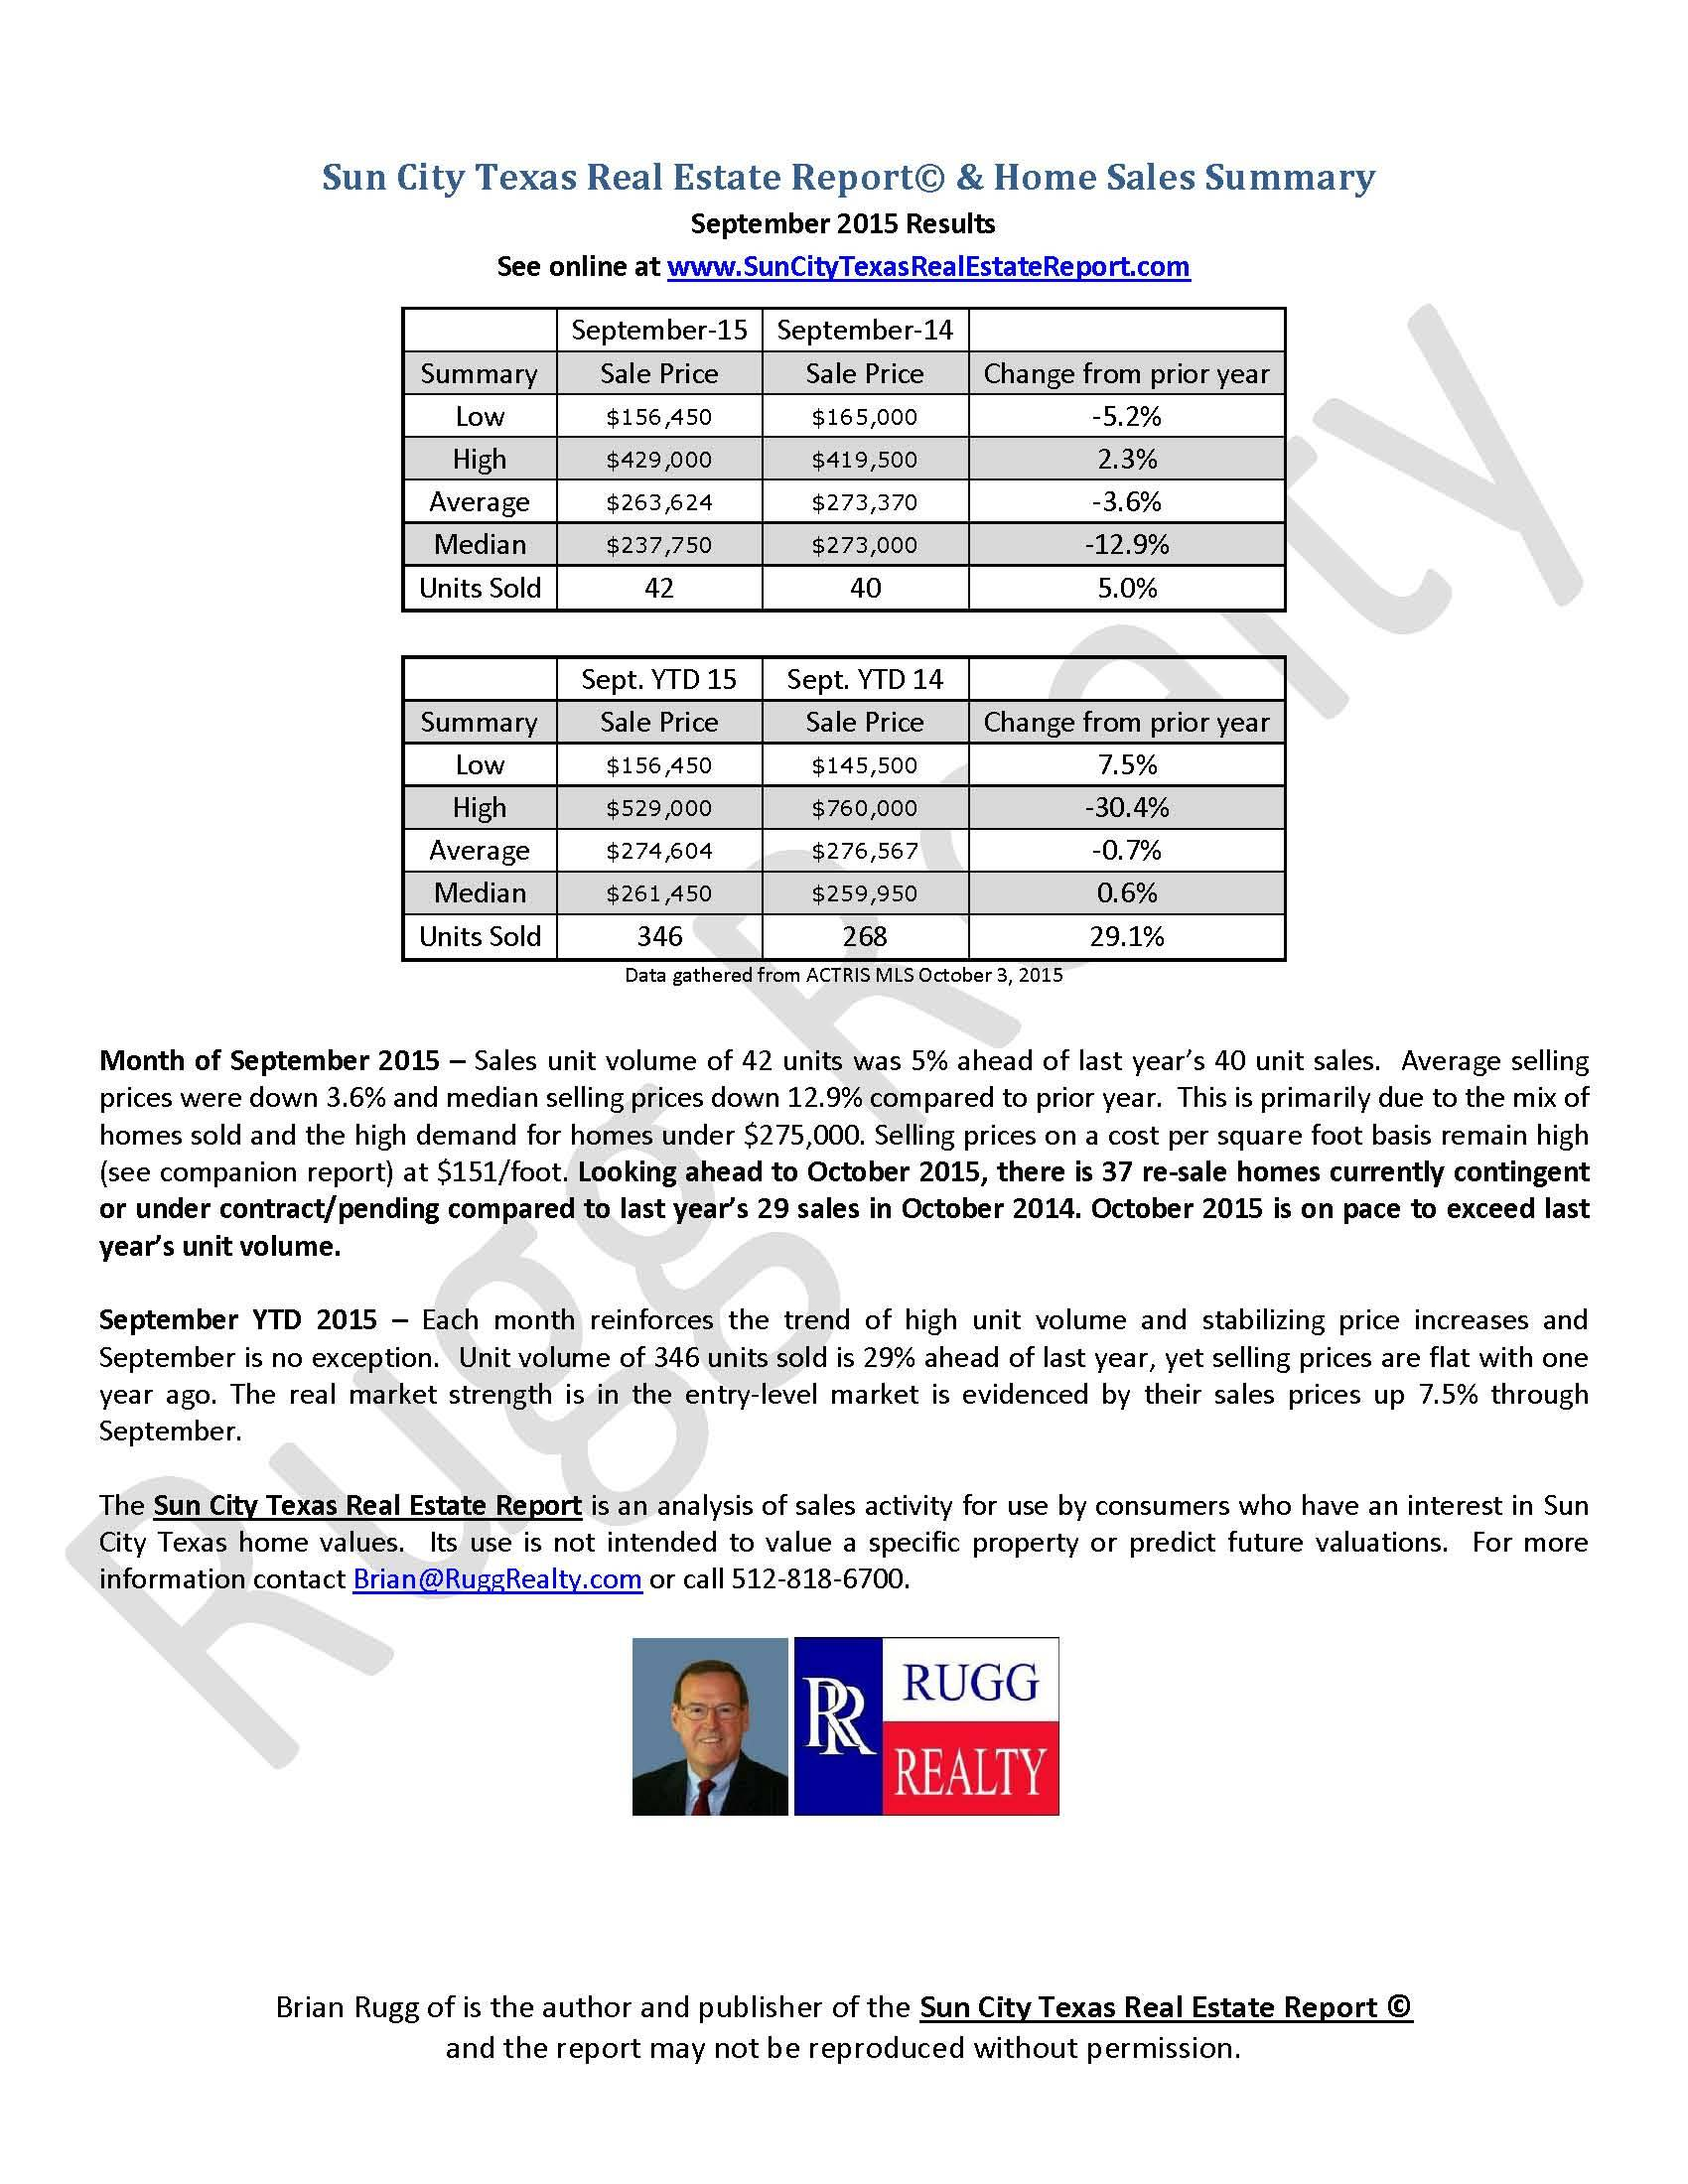 Sun City Texas Real Estate Report & Home Sales Sept 2015 - Rugg Realty